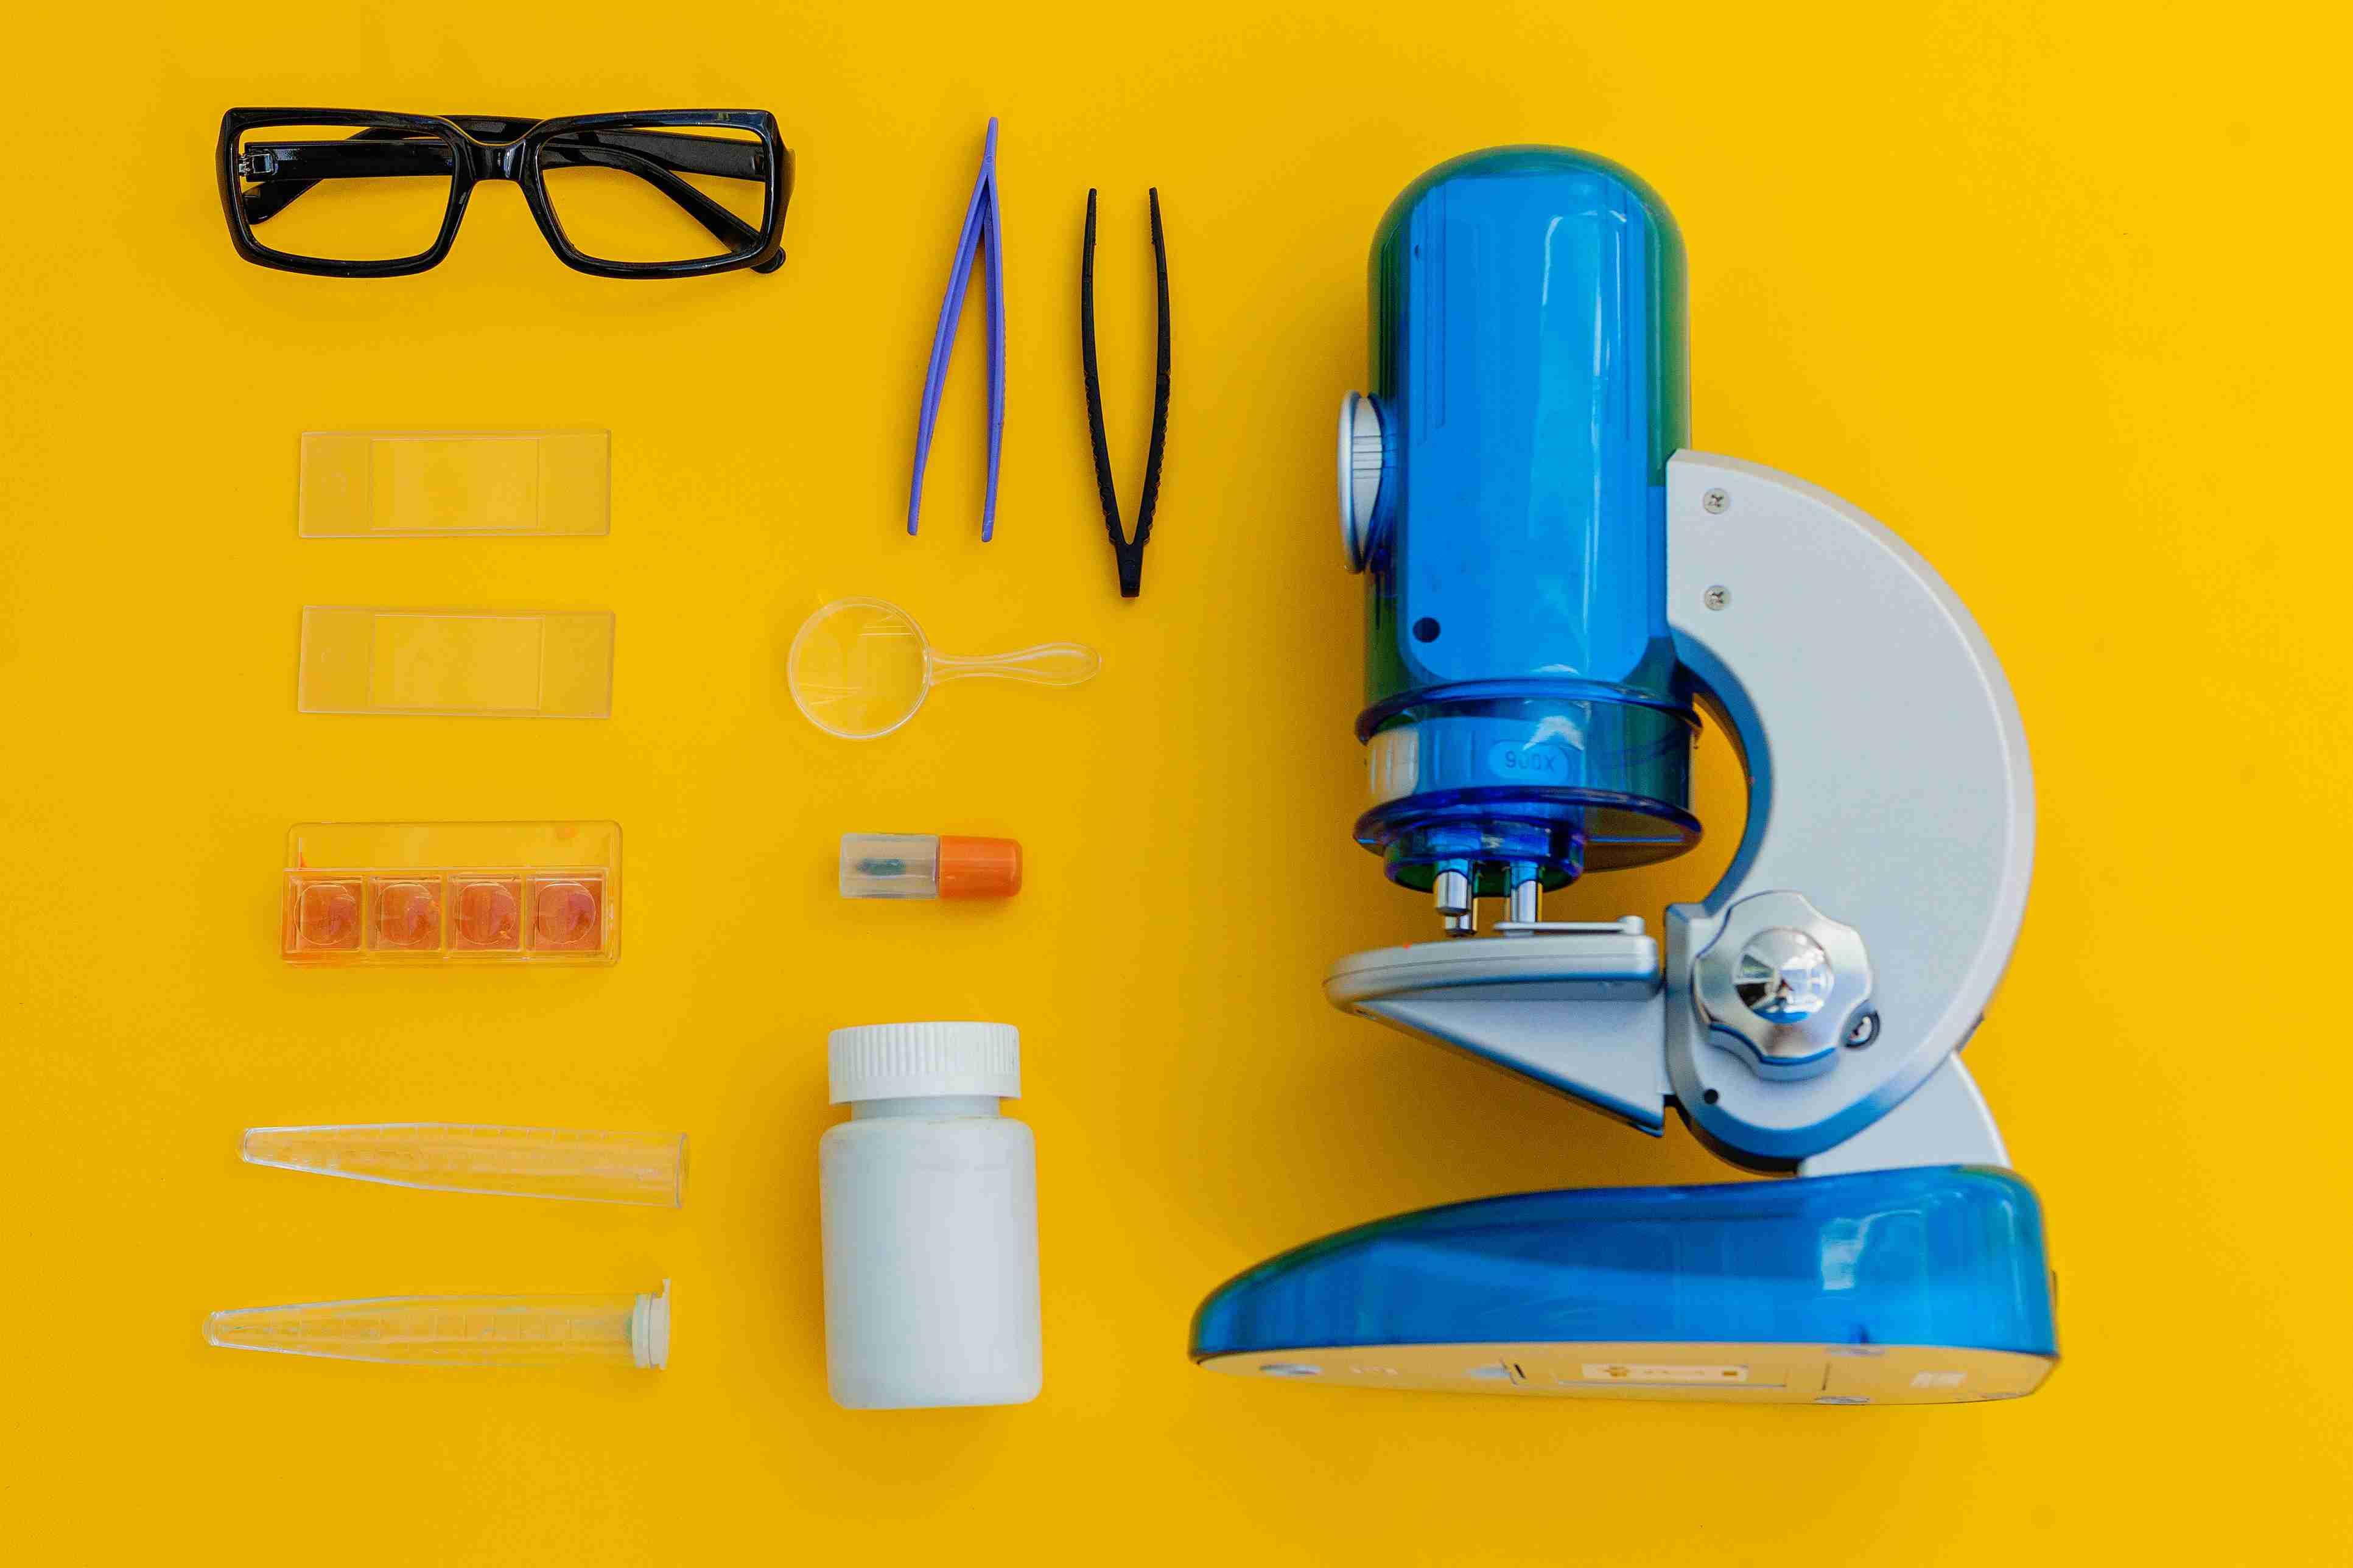 Microscope and related objects used every day by scientists, including tweezers and microscope slides